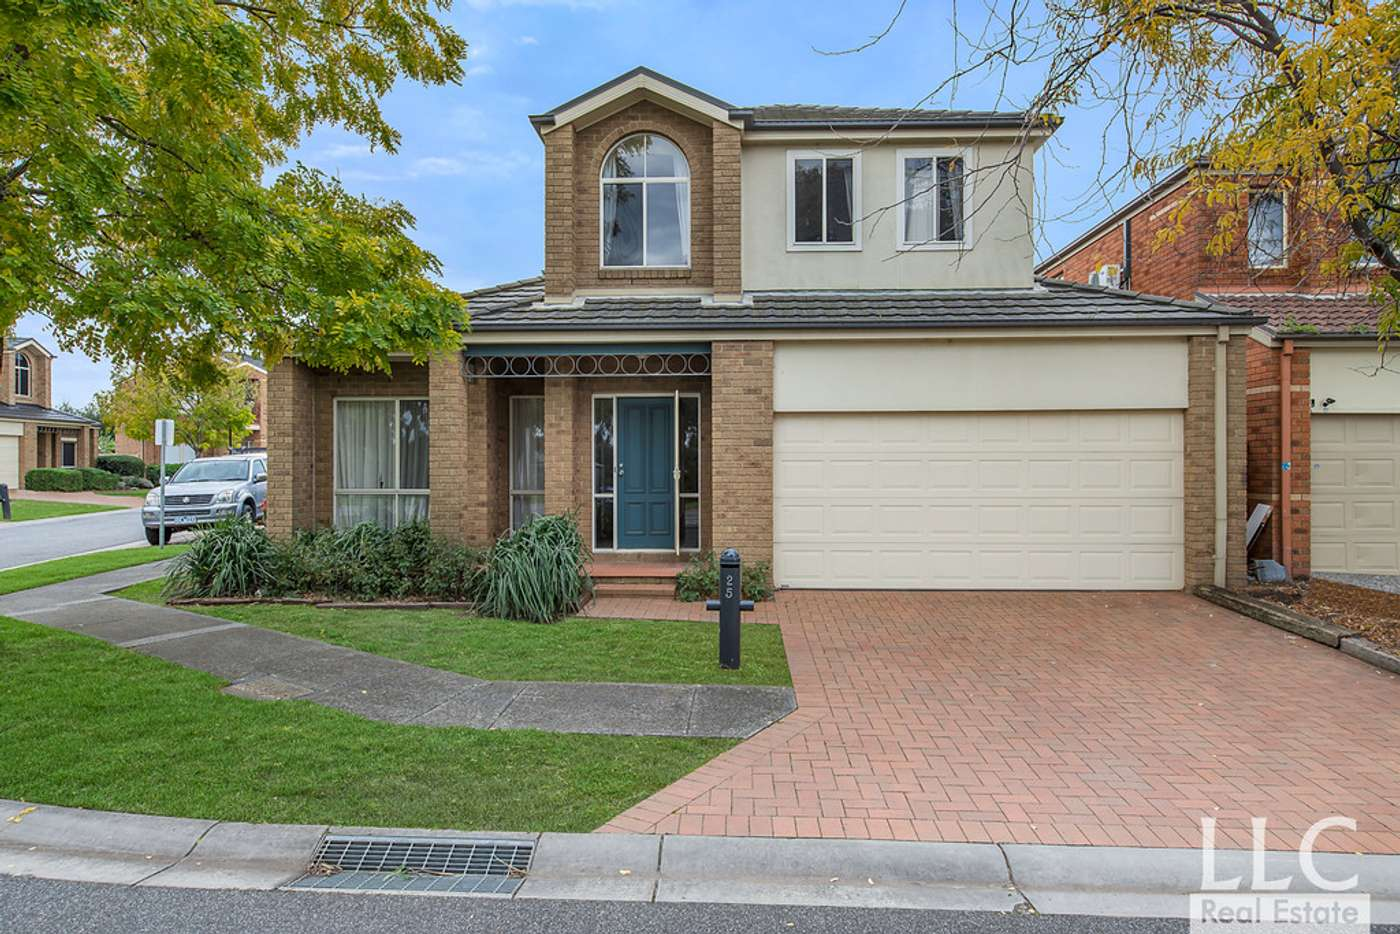 Main view of Homely townhouse listing, 25 Amhurst Drive, Narre Warren South VIC 3805